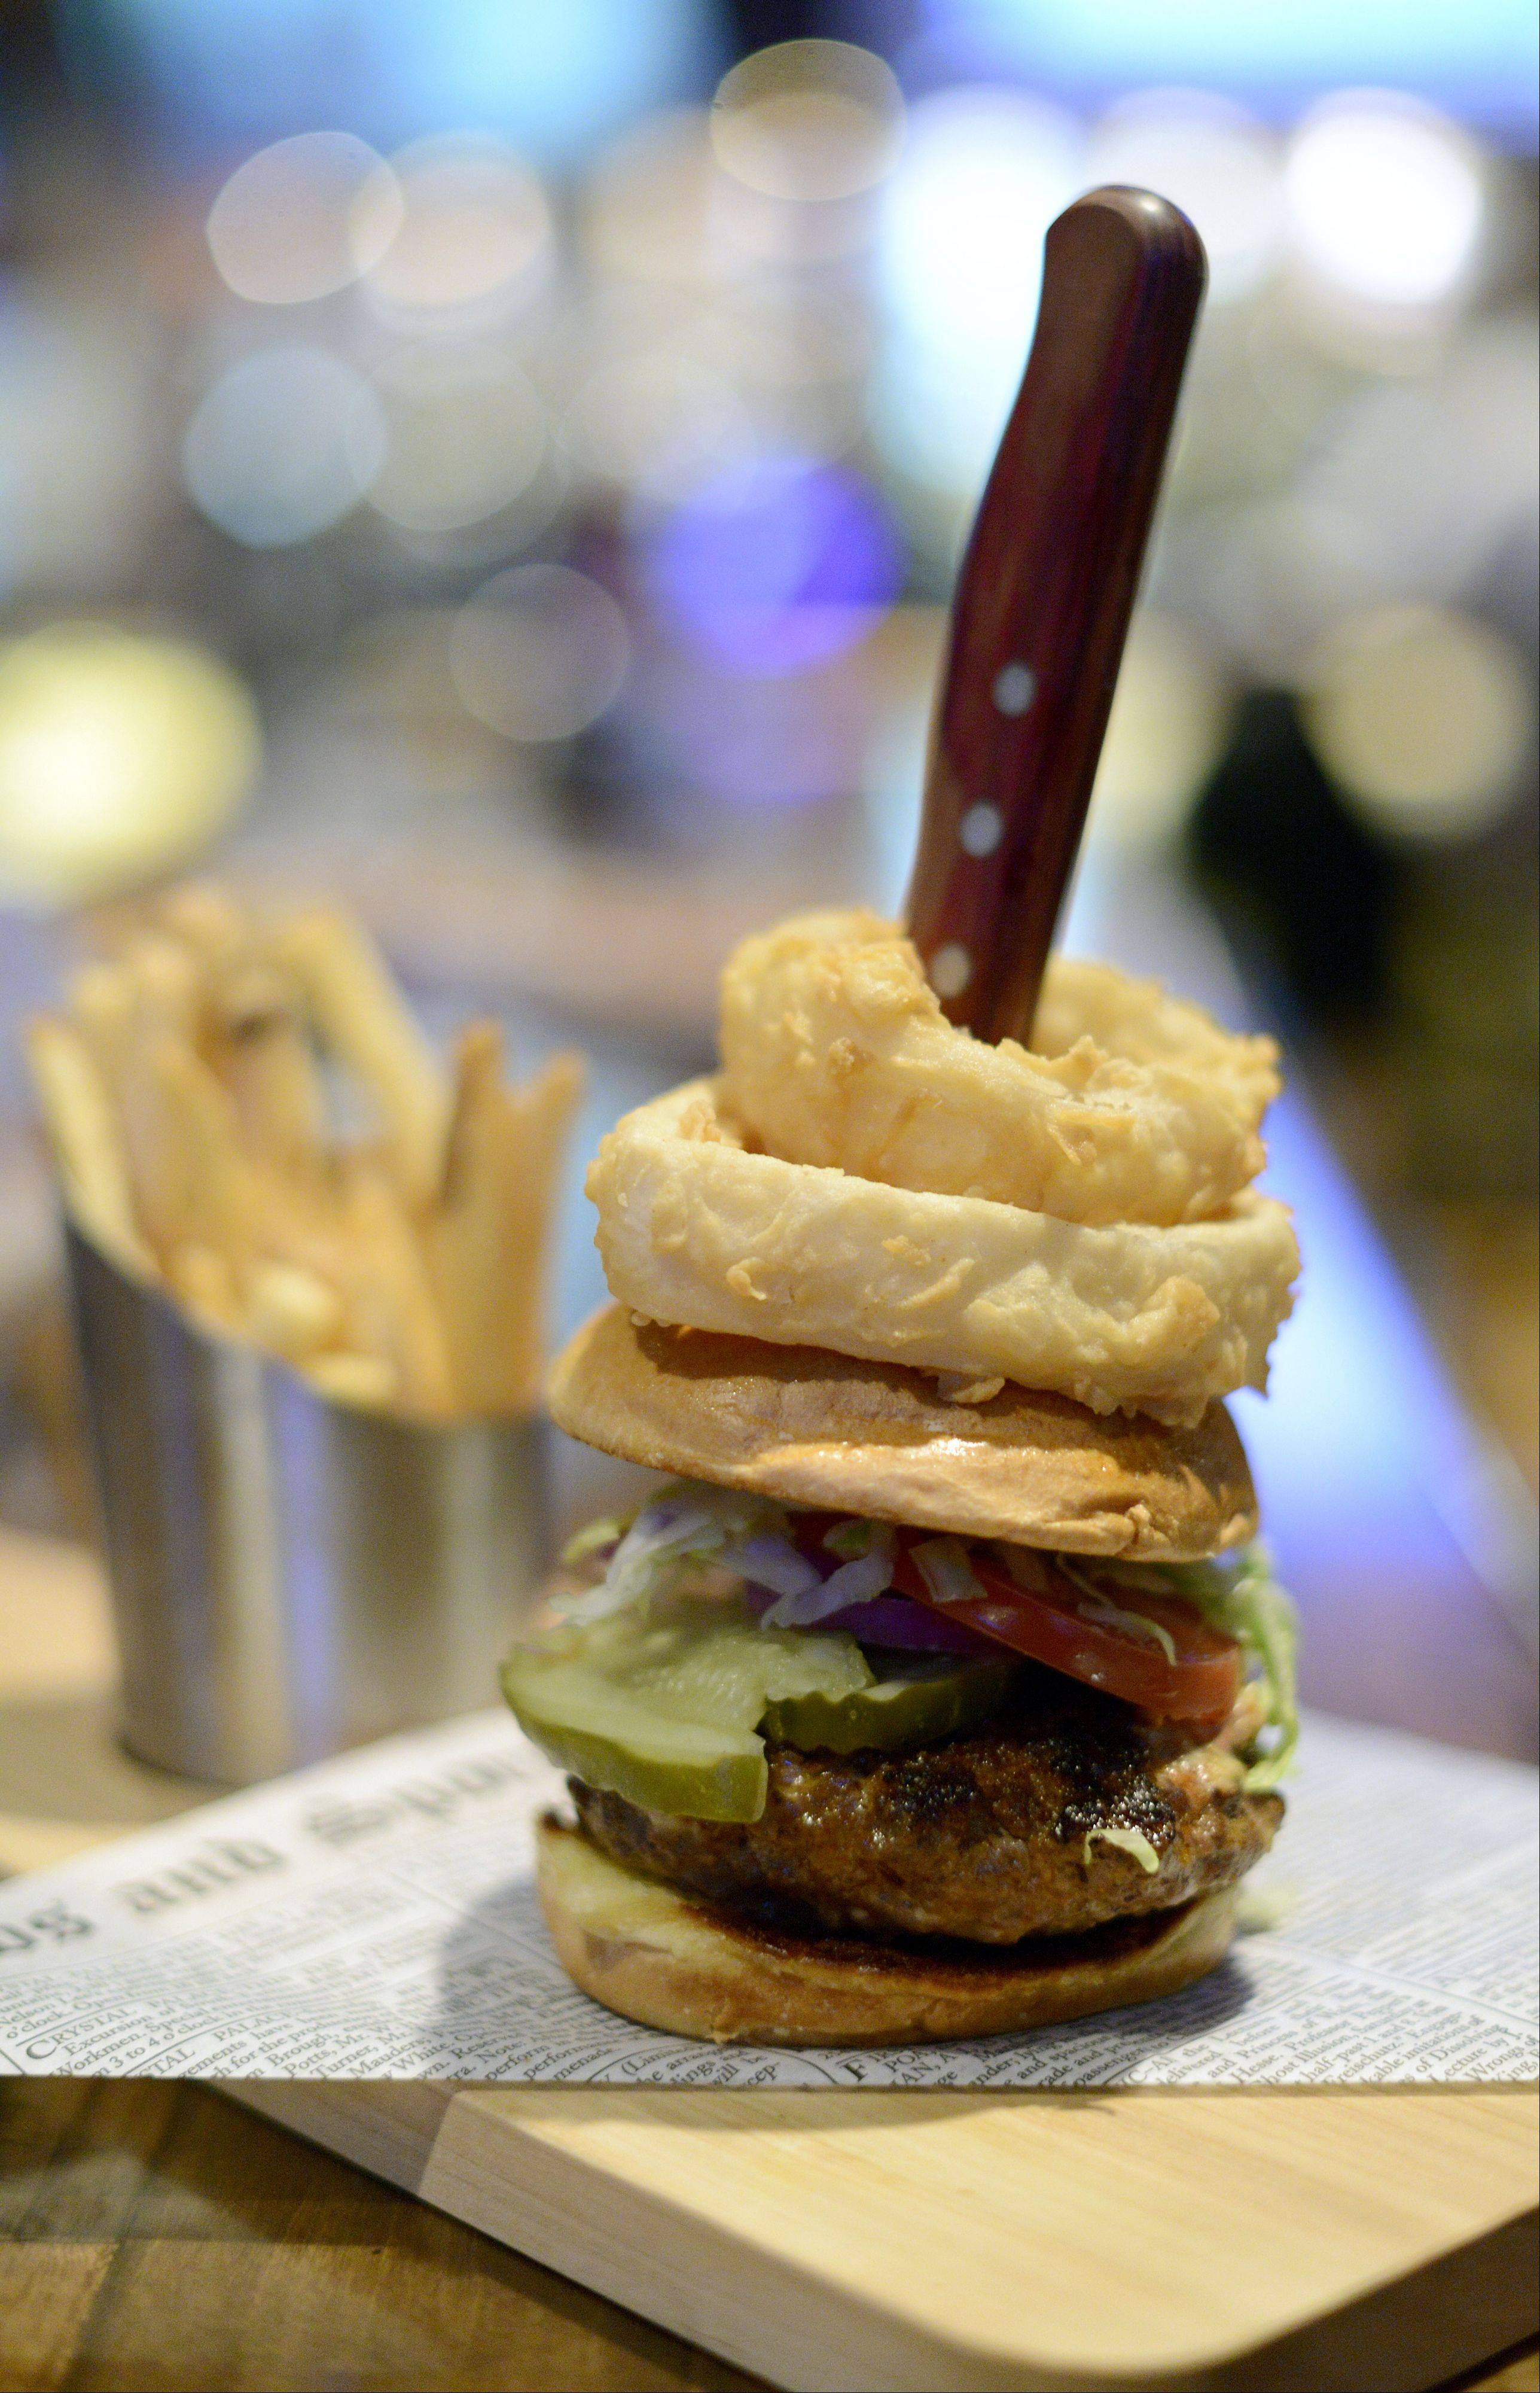 Fox & Hound's Utimate Burger is made with Angus beef and Chorizo sausage, guacamole, jalape�os and cheese. It's topped with spicy mayonnaise, lettuce, tomato, red onions and pickles, and then served with two onion rings.